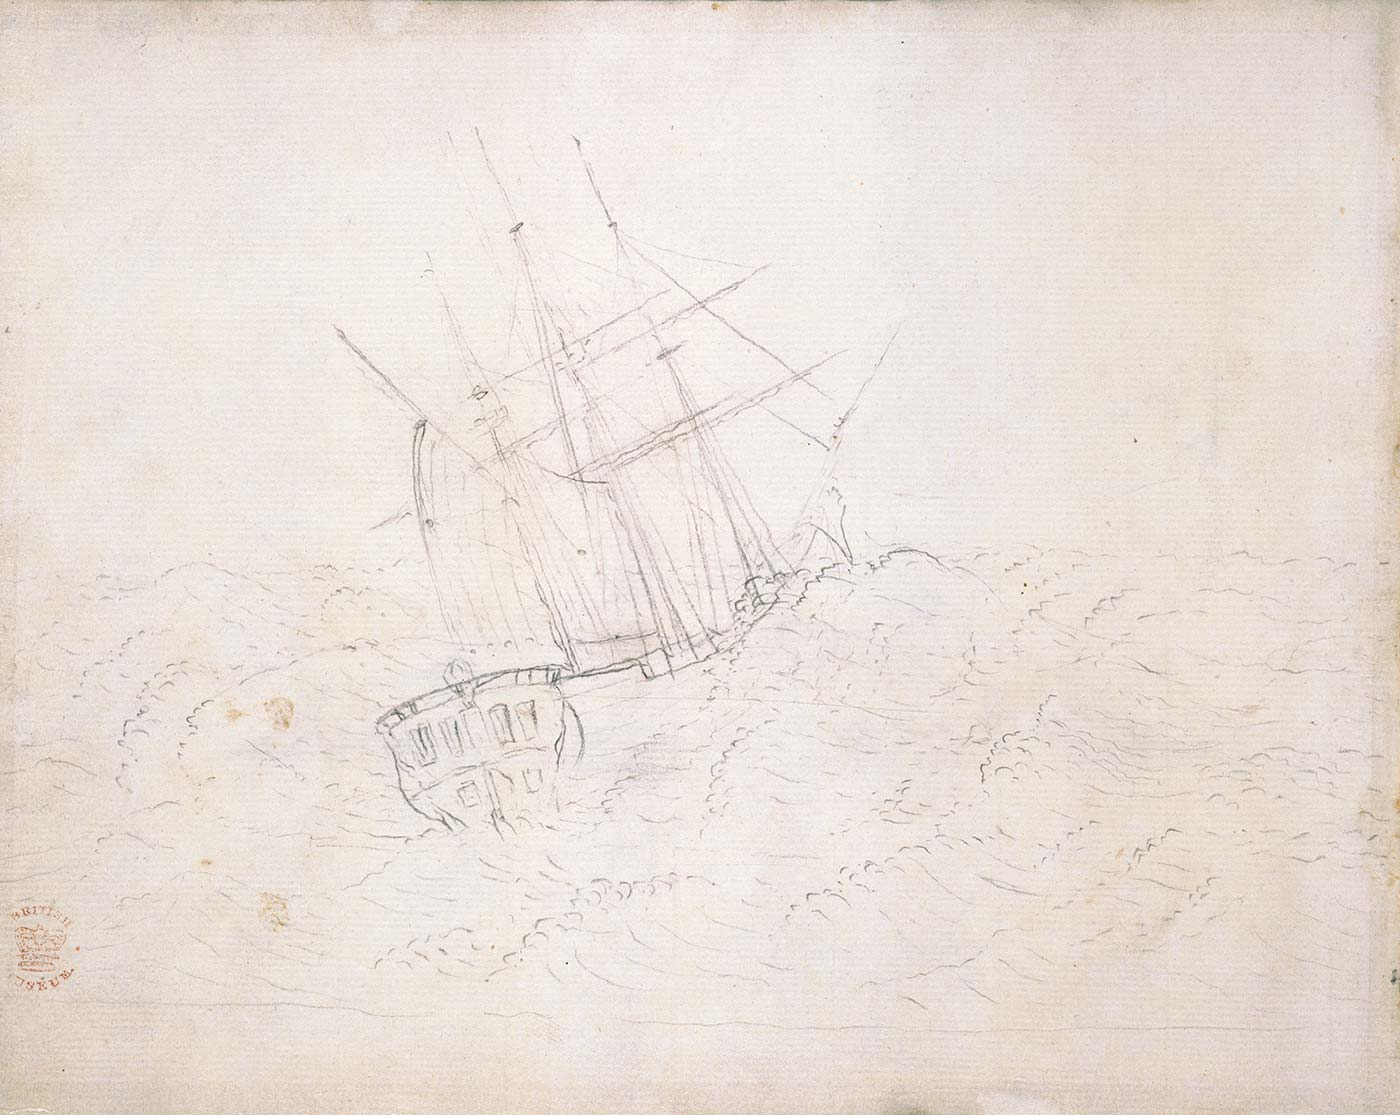 Black and white pencil drawing of a high-masted sailing ship with waves breaking over the side.